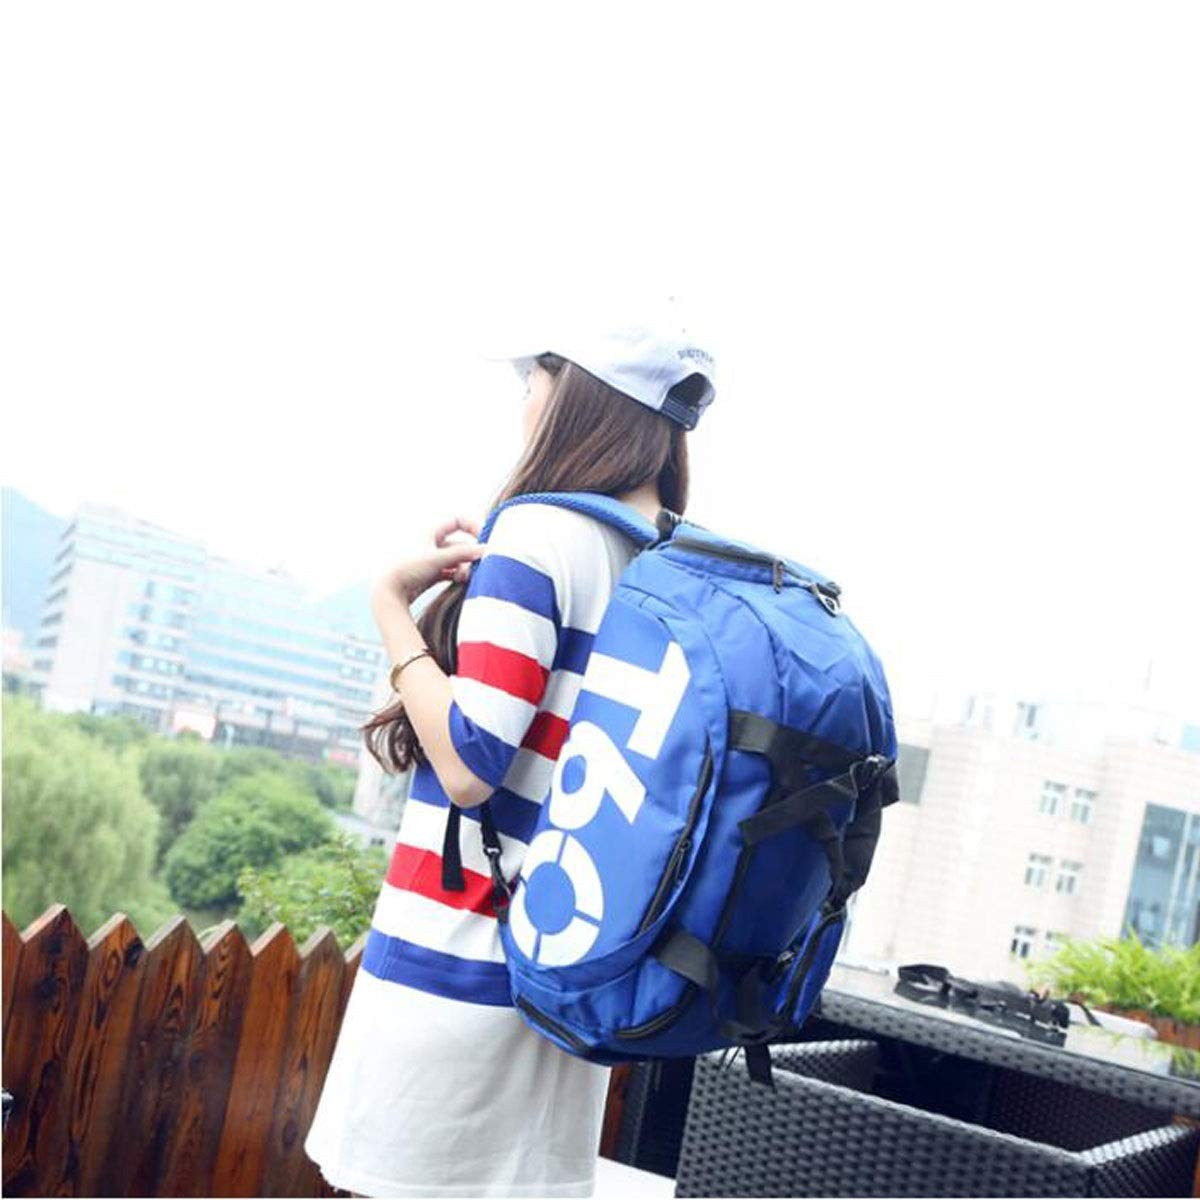 Large-Capacity Duffel Bag Waterproof Gym Bag Gift Training Bag with Independent Shoe Warehouse Female Hand Bag ZHICHUANG Duffel Bag Size: 502220cm Travel Duffel Bag for Men and Women